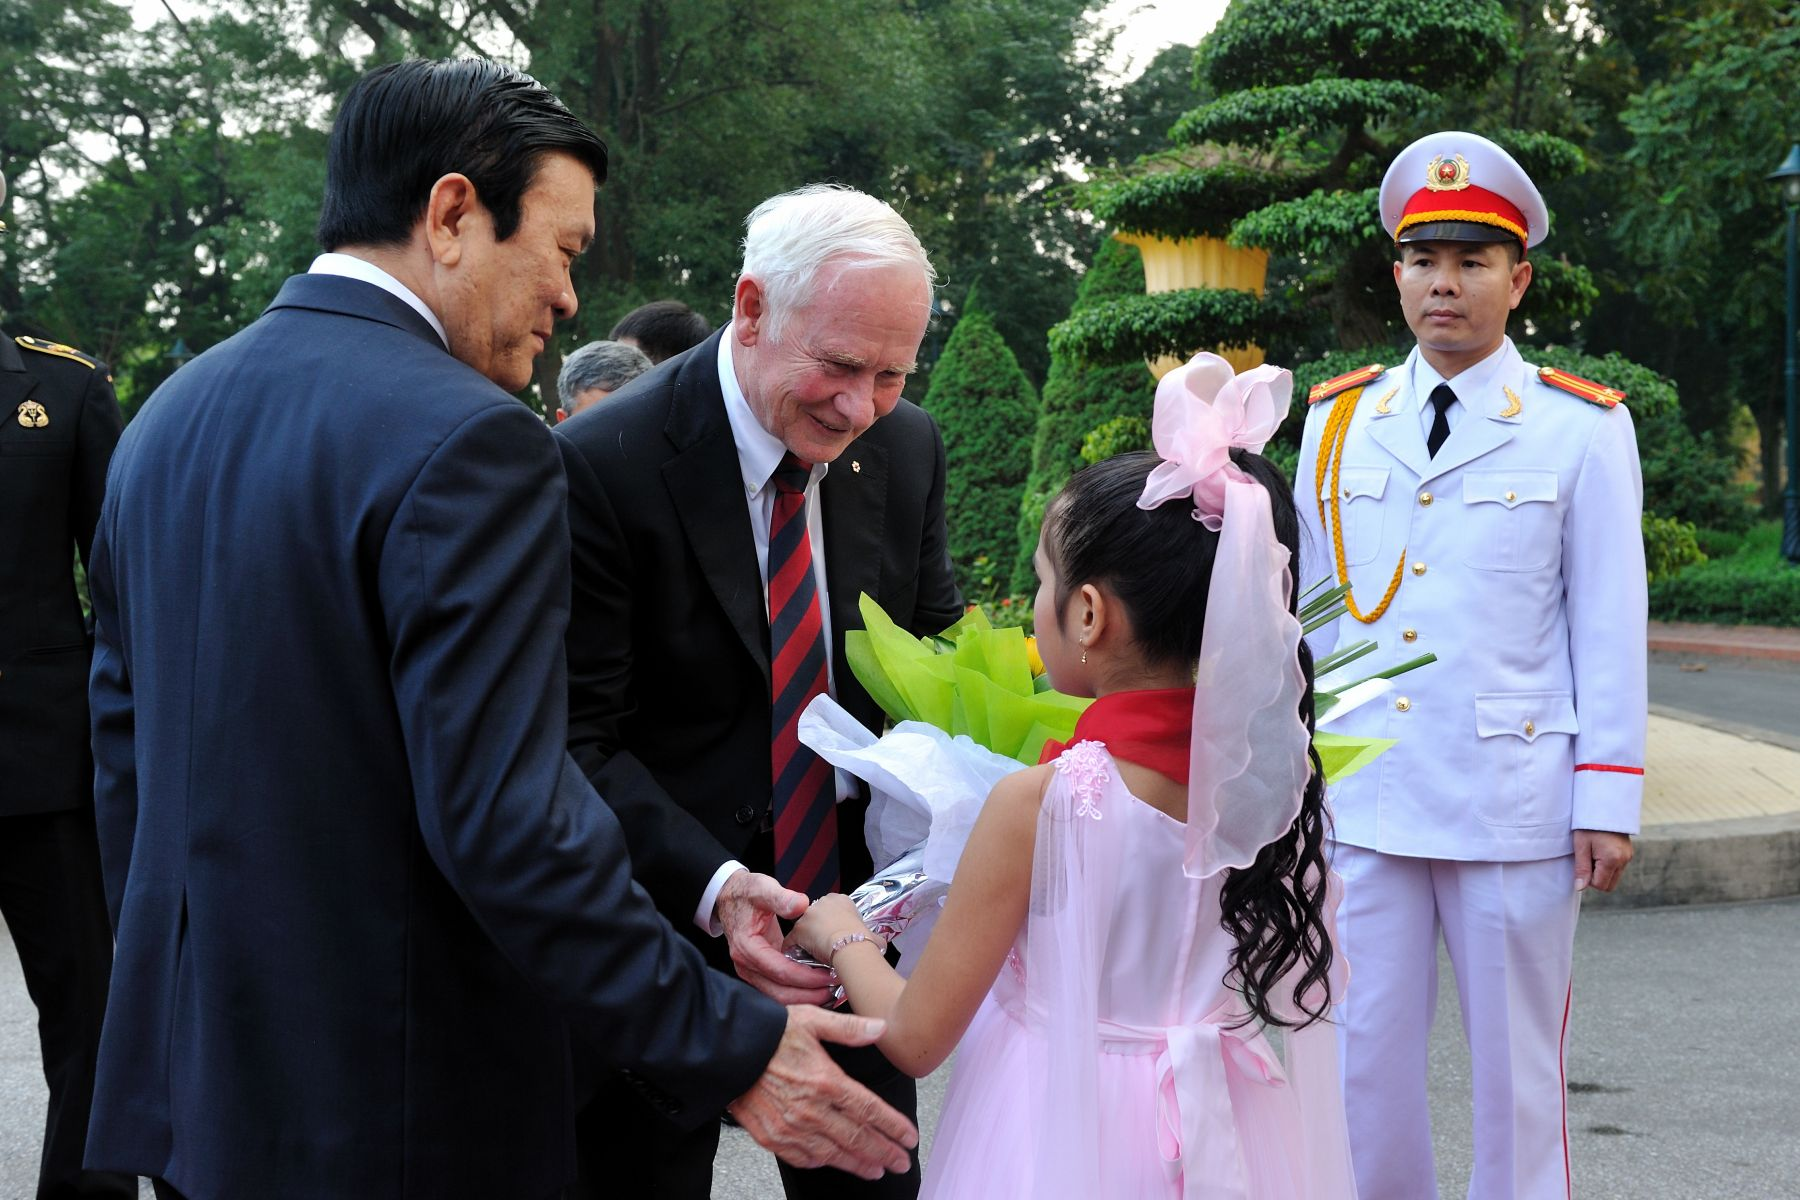 The Governor General was officially welcomed to Vietnam by His Excellency Truong Tan Sang, President of the Socialist Republic of Vietnam, during a ceremony with full military honours.